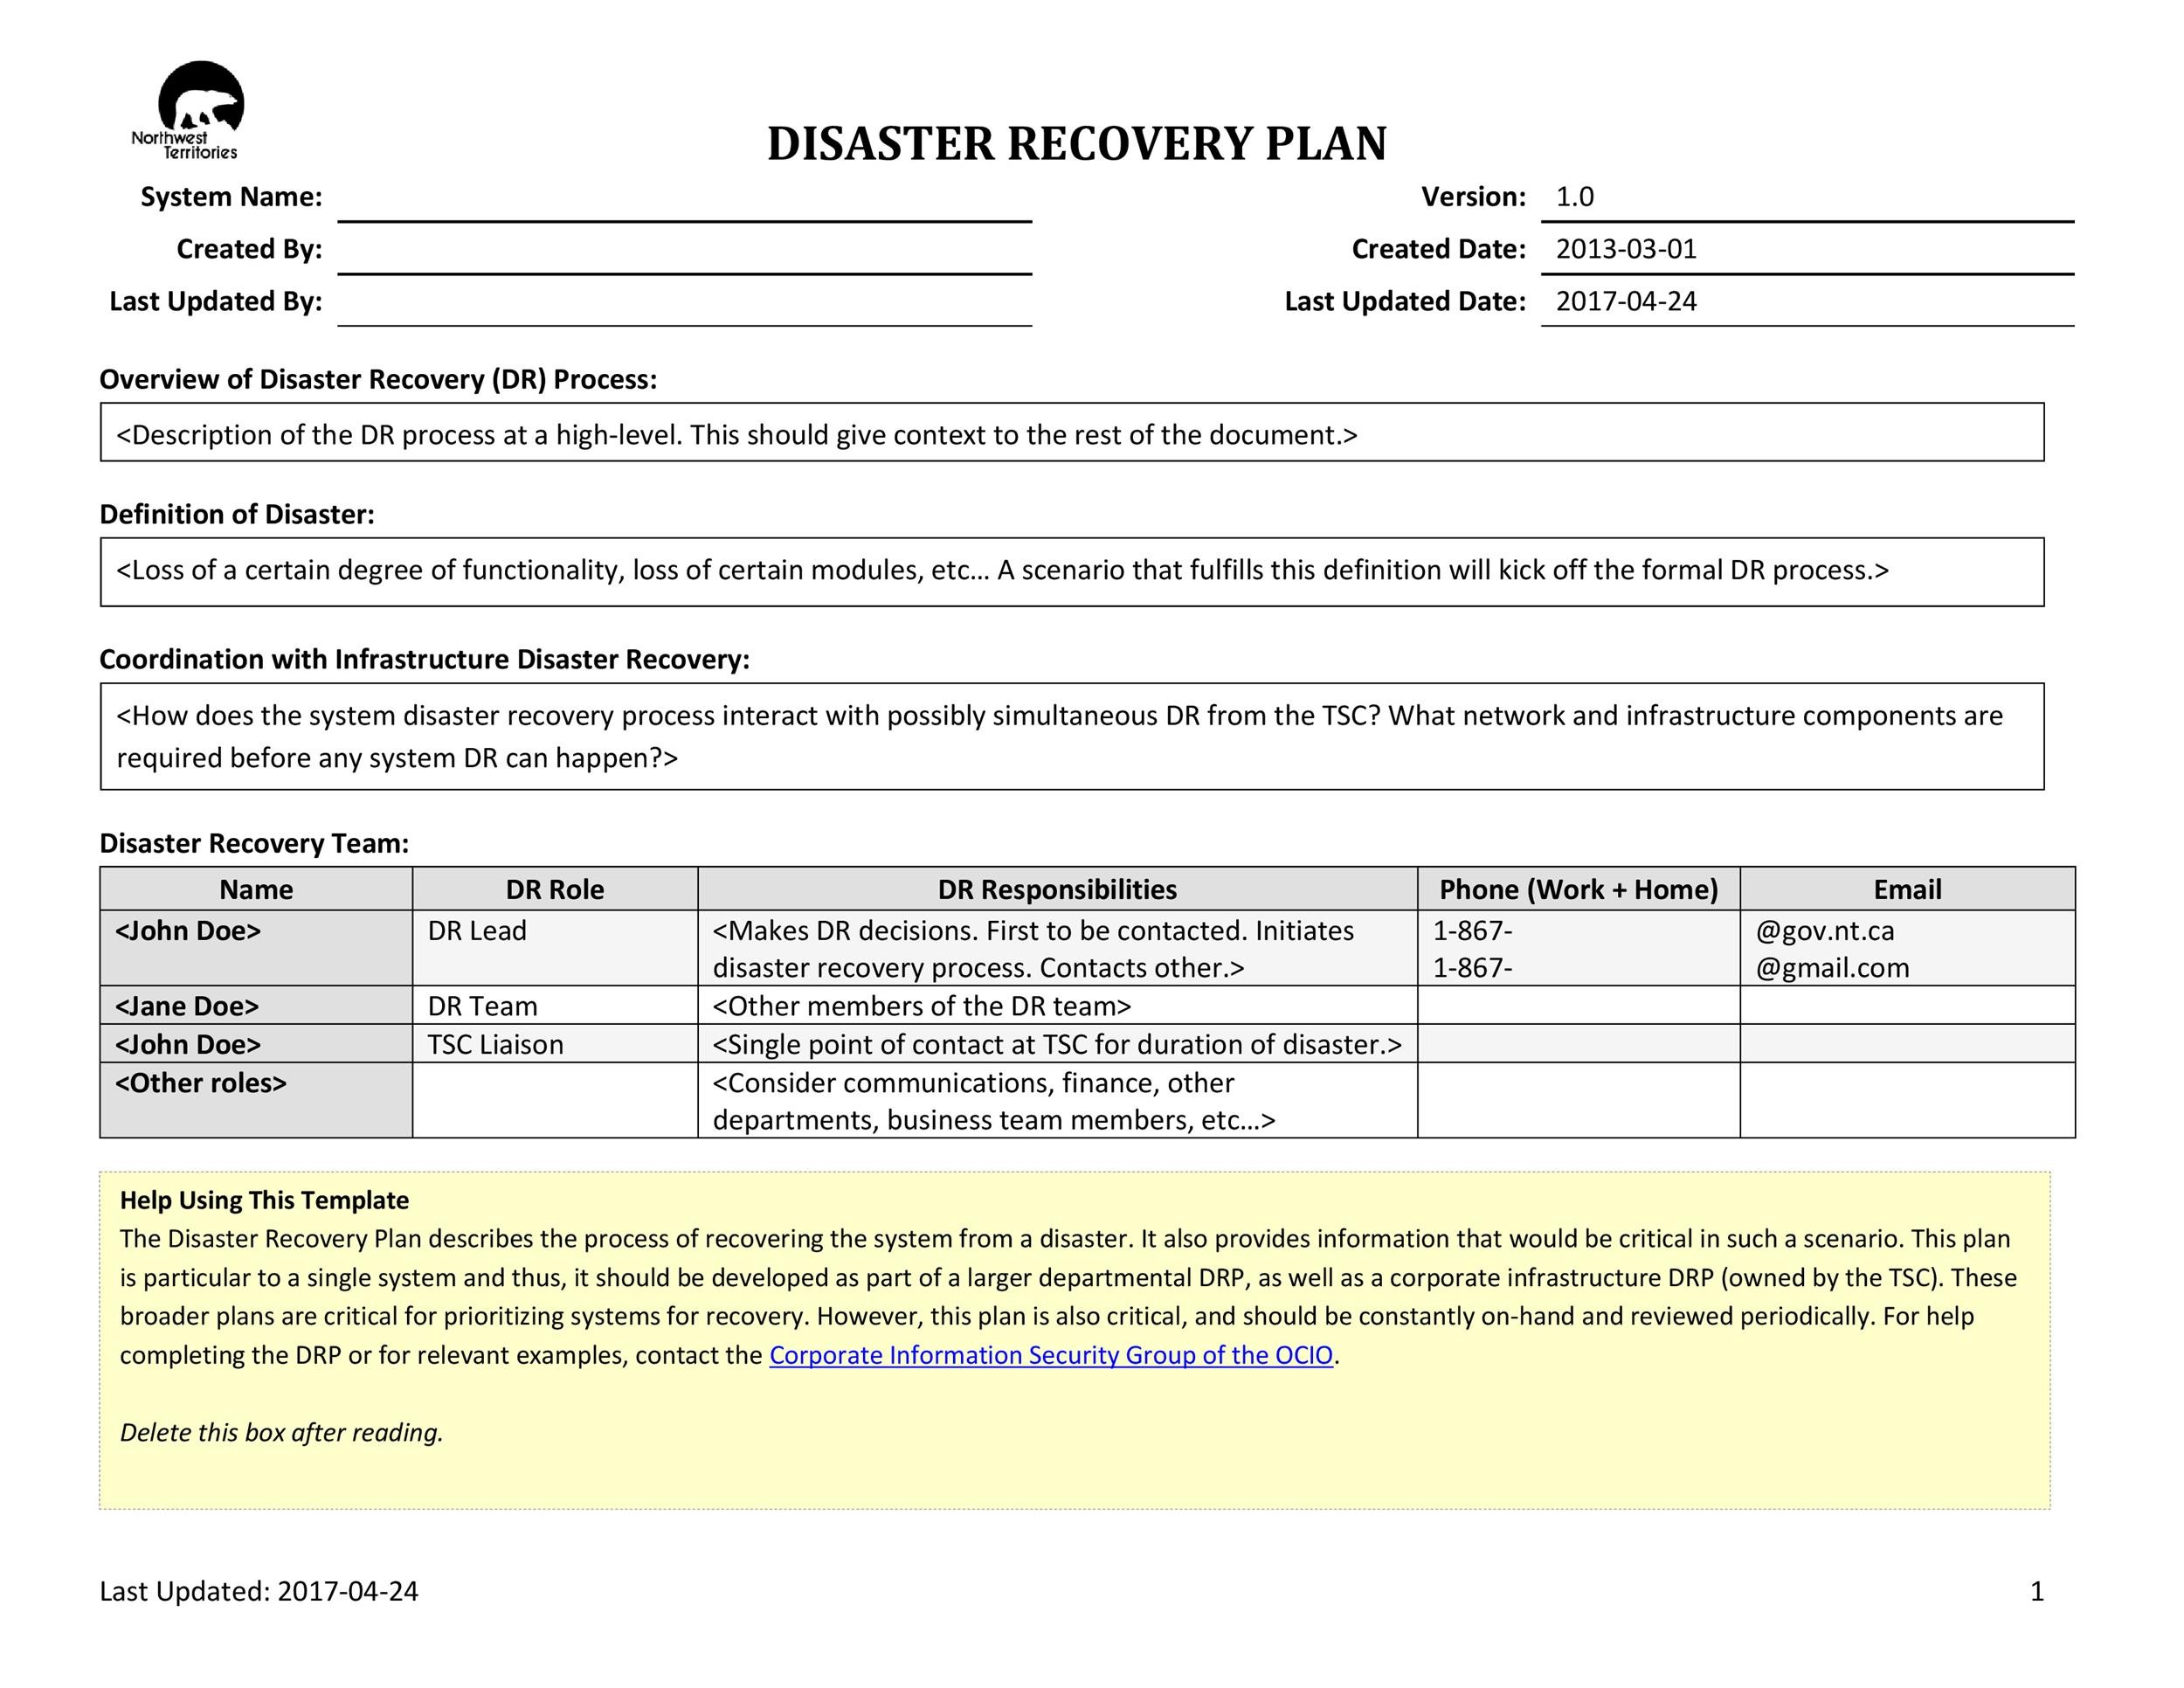 52 Effective Disaster Recovery Plan Templates [DRP] - Template Lab